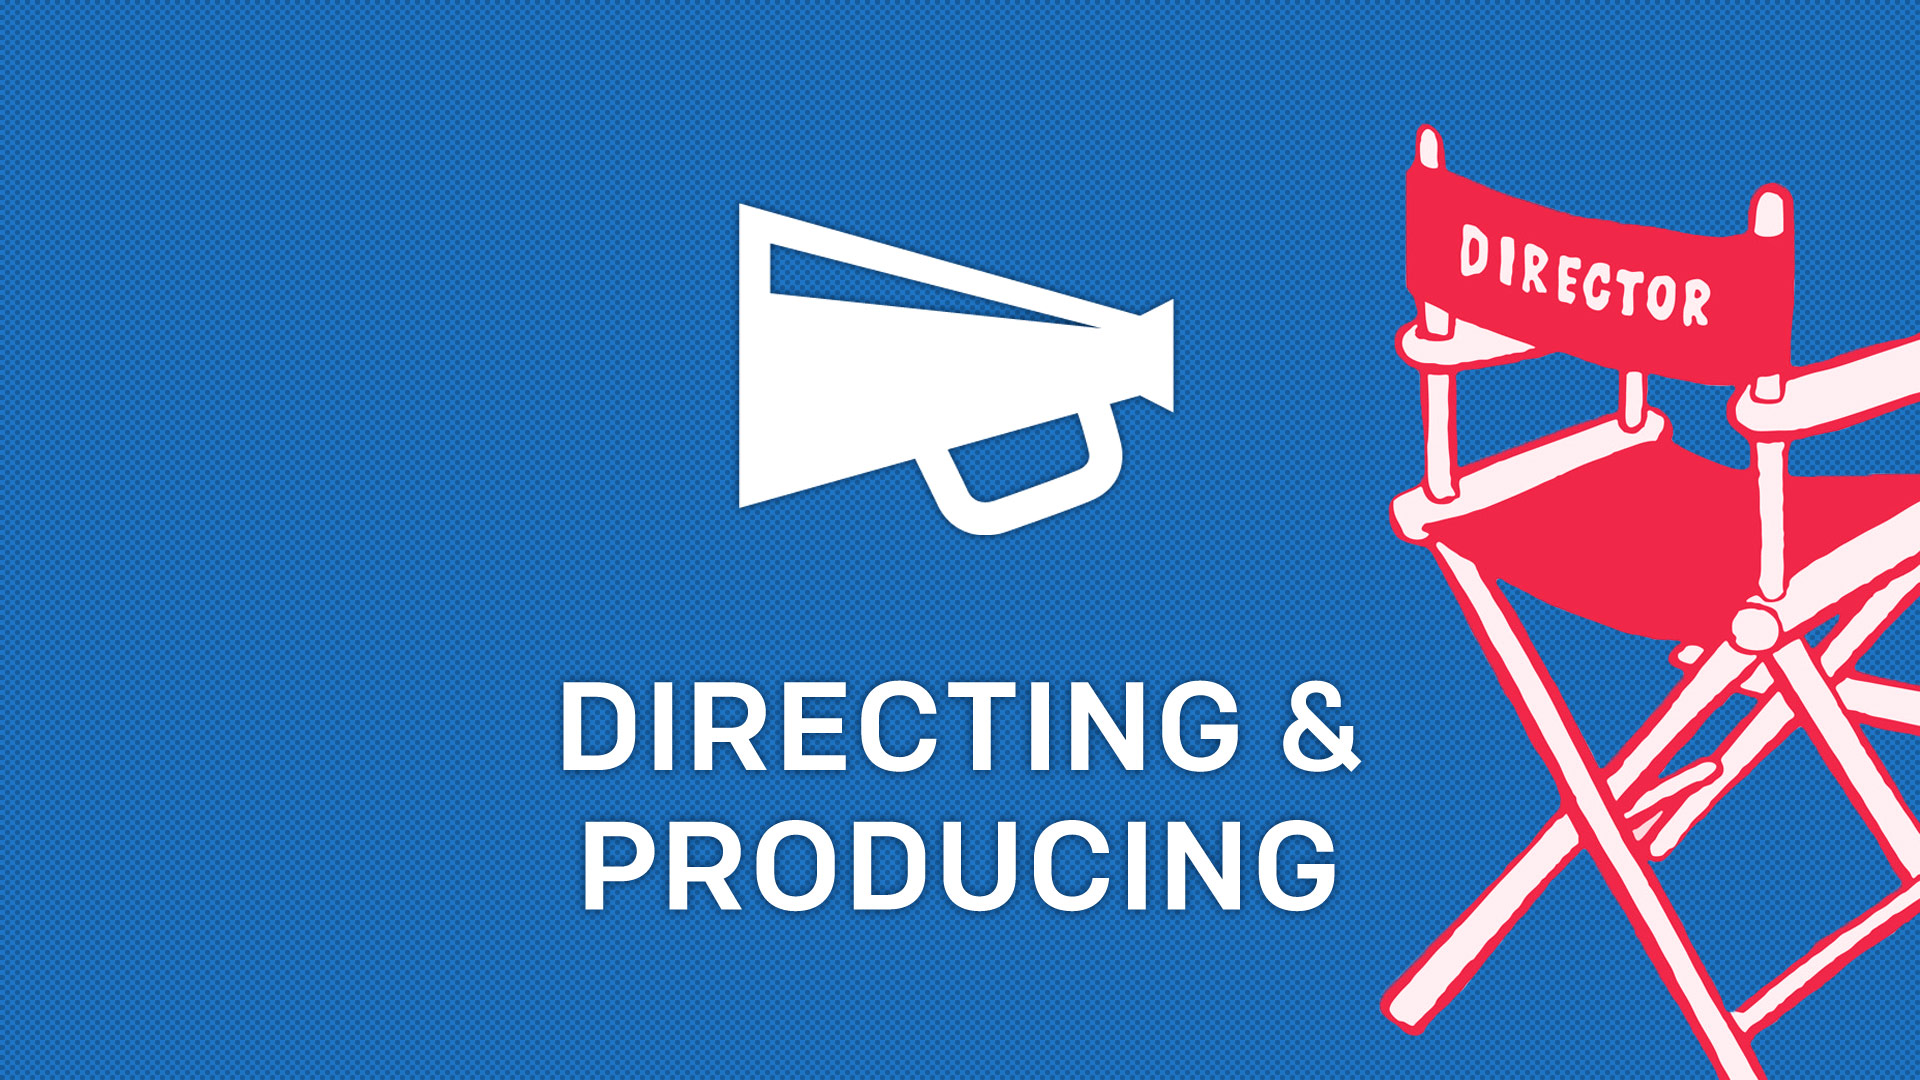 Directing & Producing